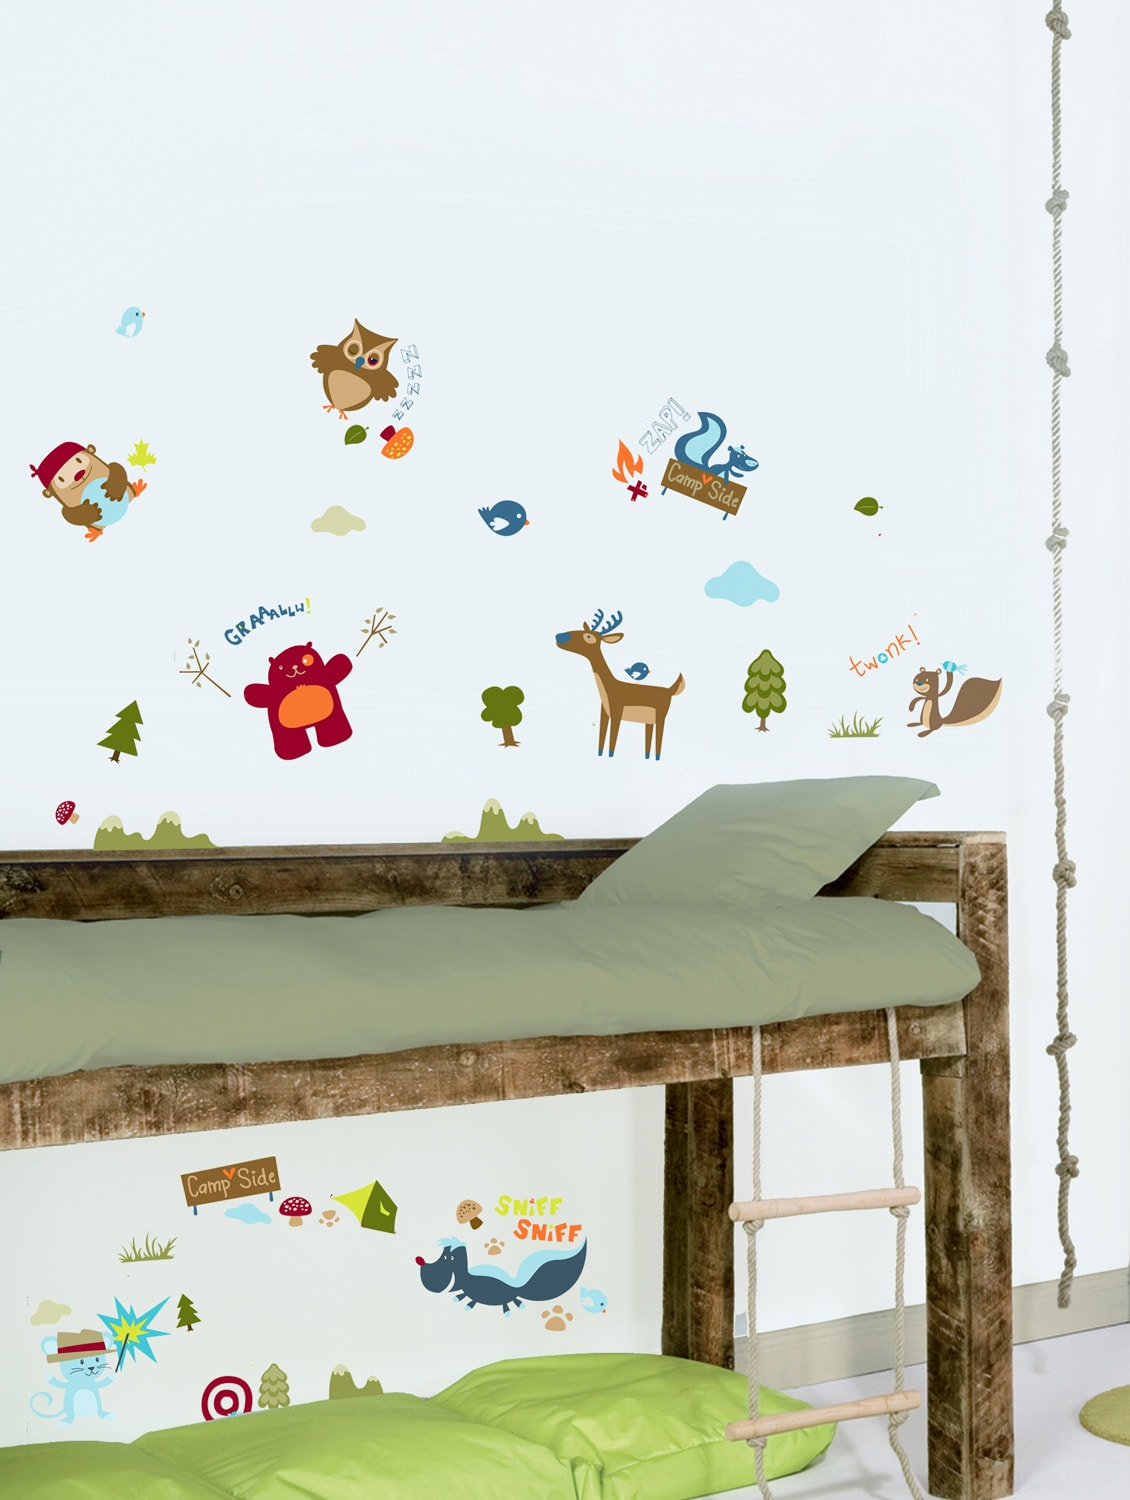 ... Camp Side Wall Stickers   26958   Zoom Image   1